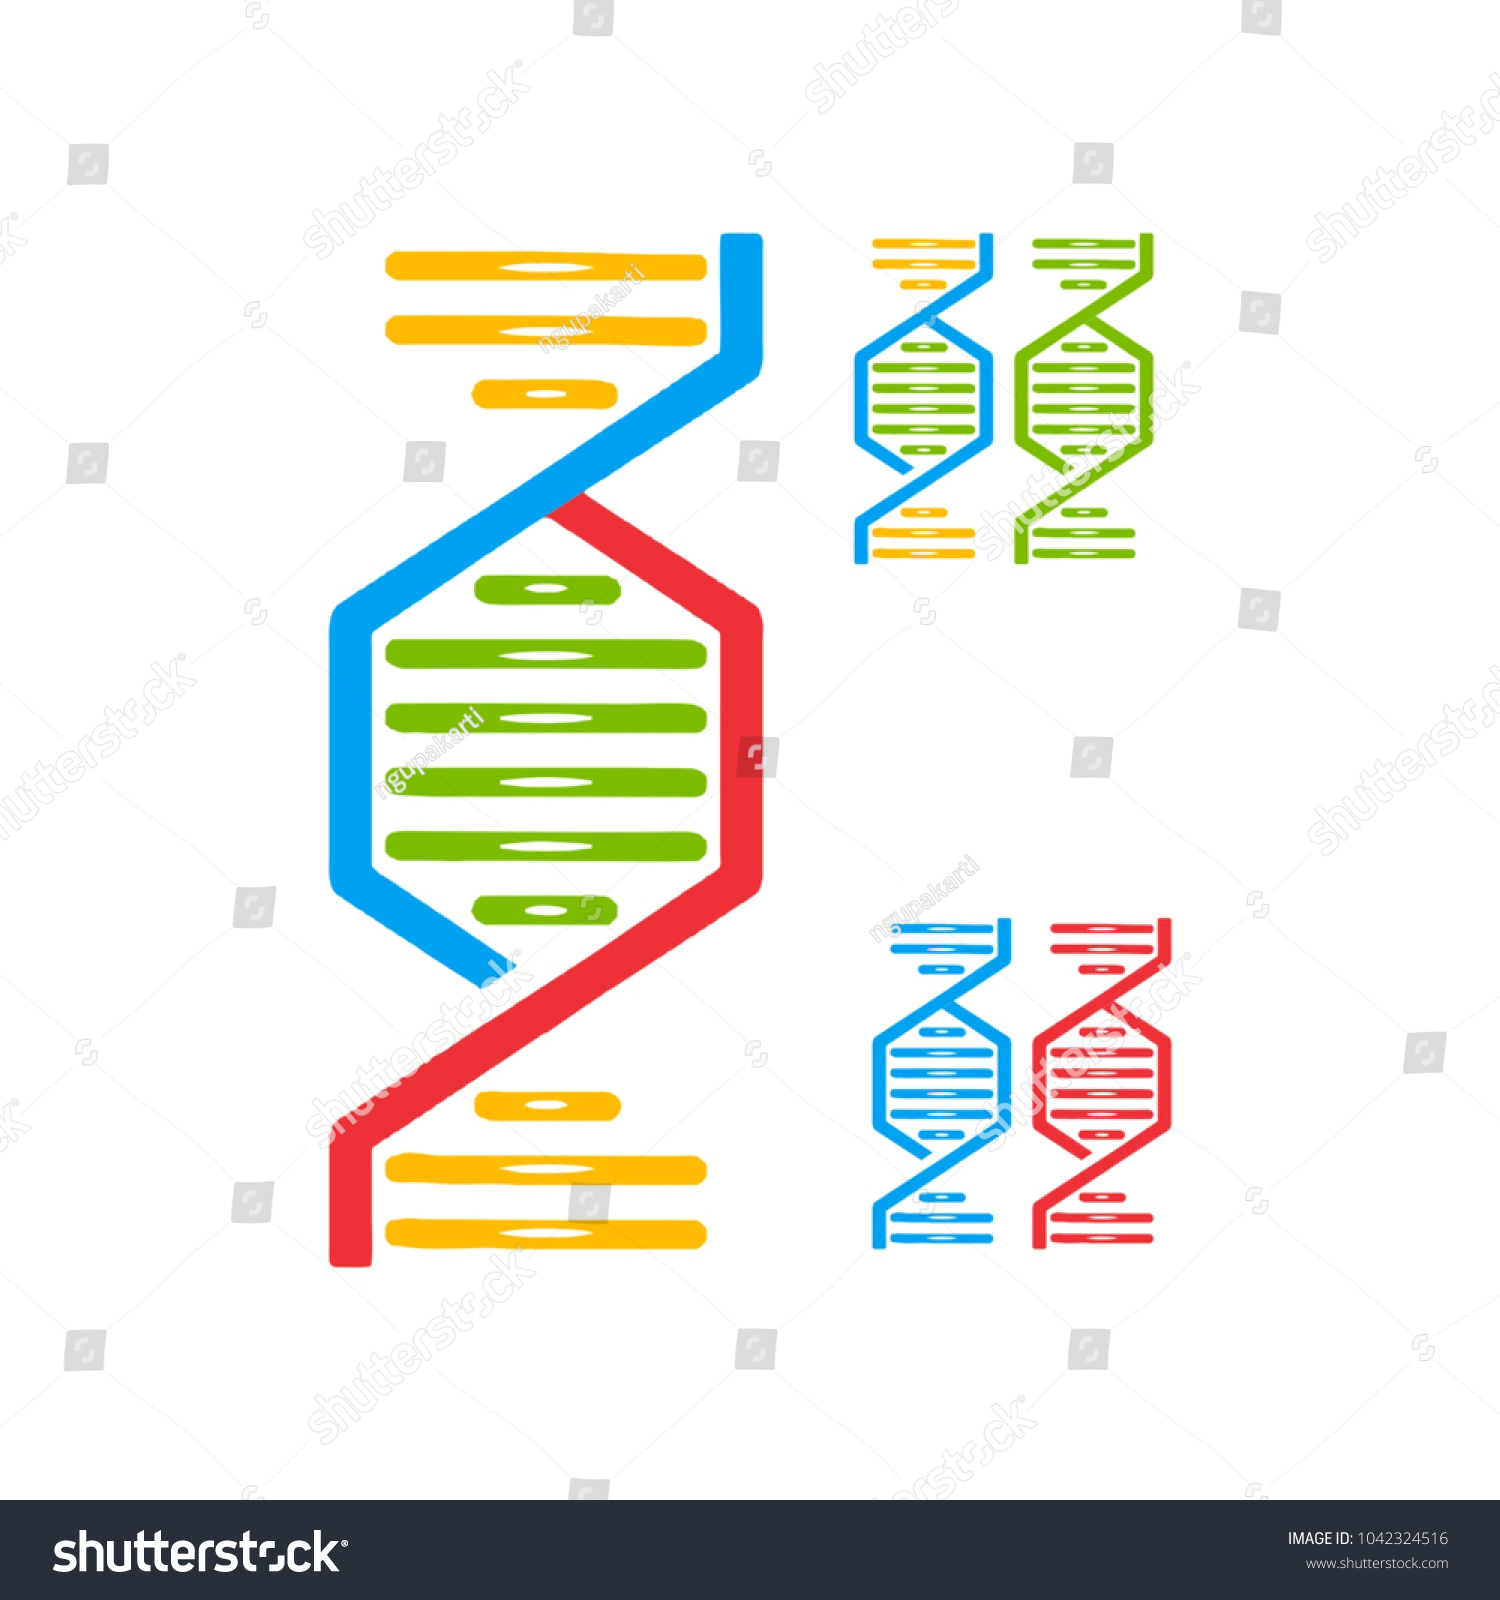 dna logo creative unique shape template のベクター画像素材